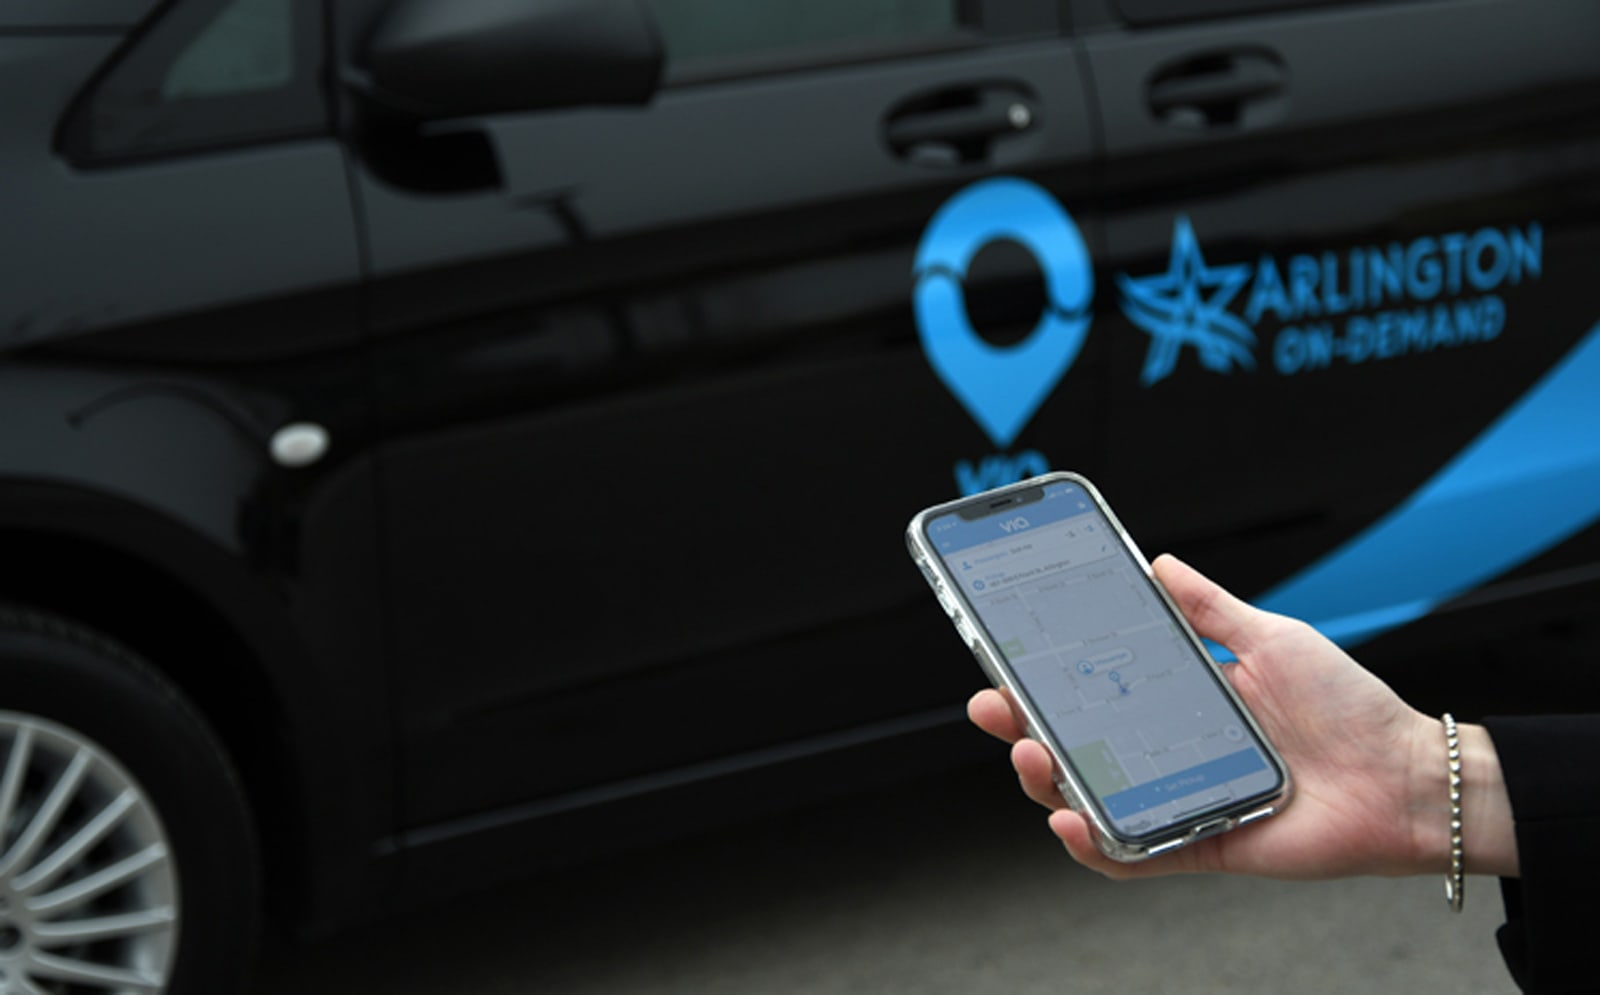 Texas city drops its bus service in favor of ridesharing vans